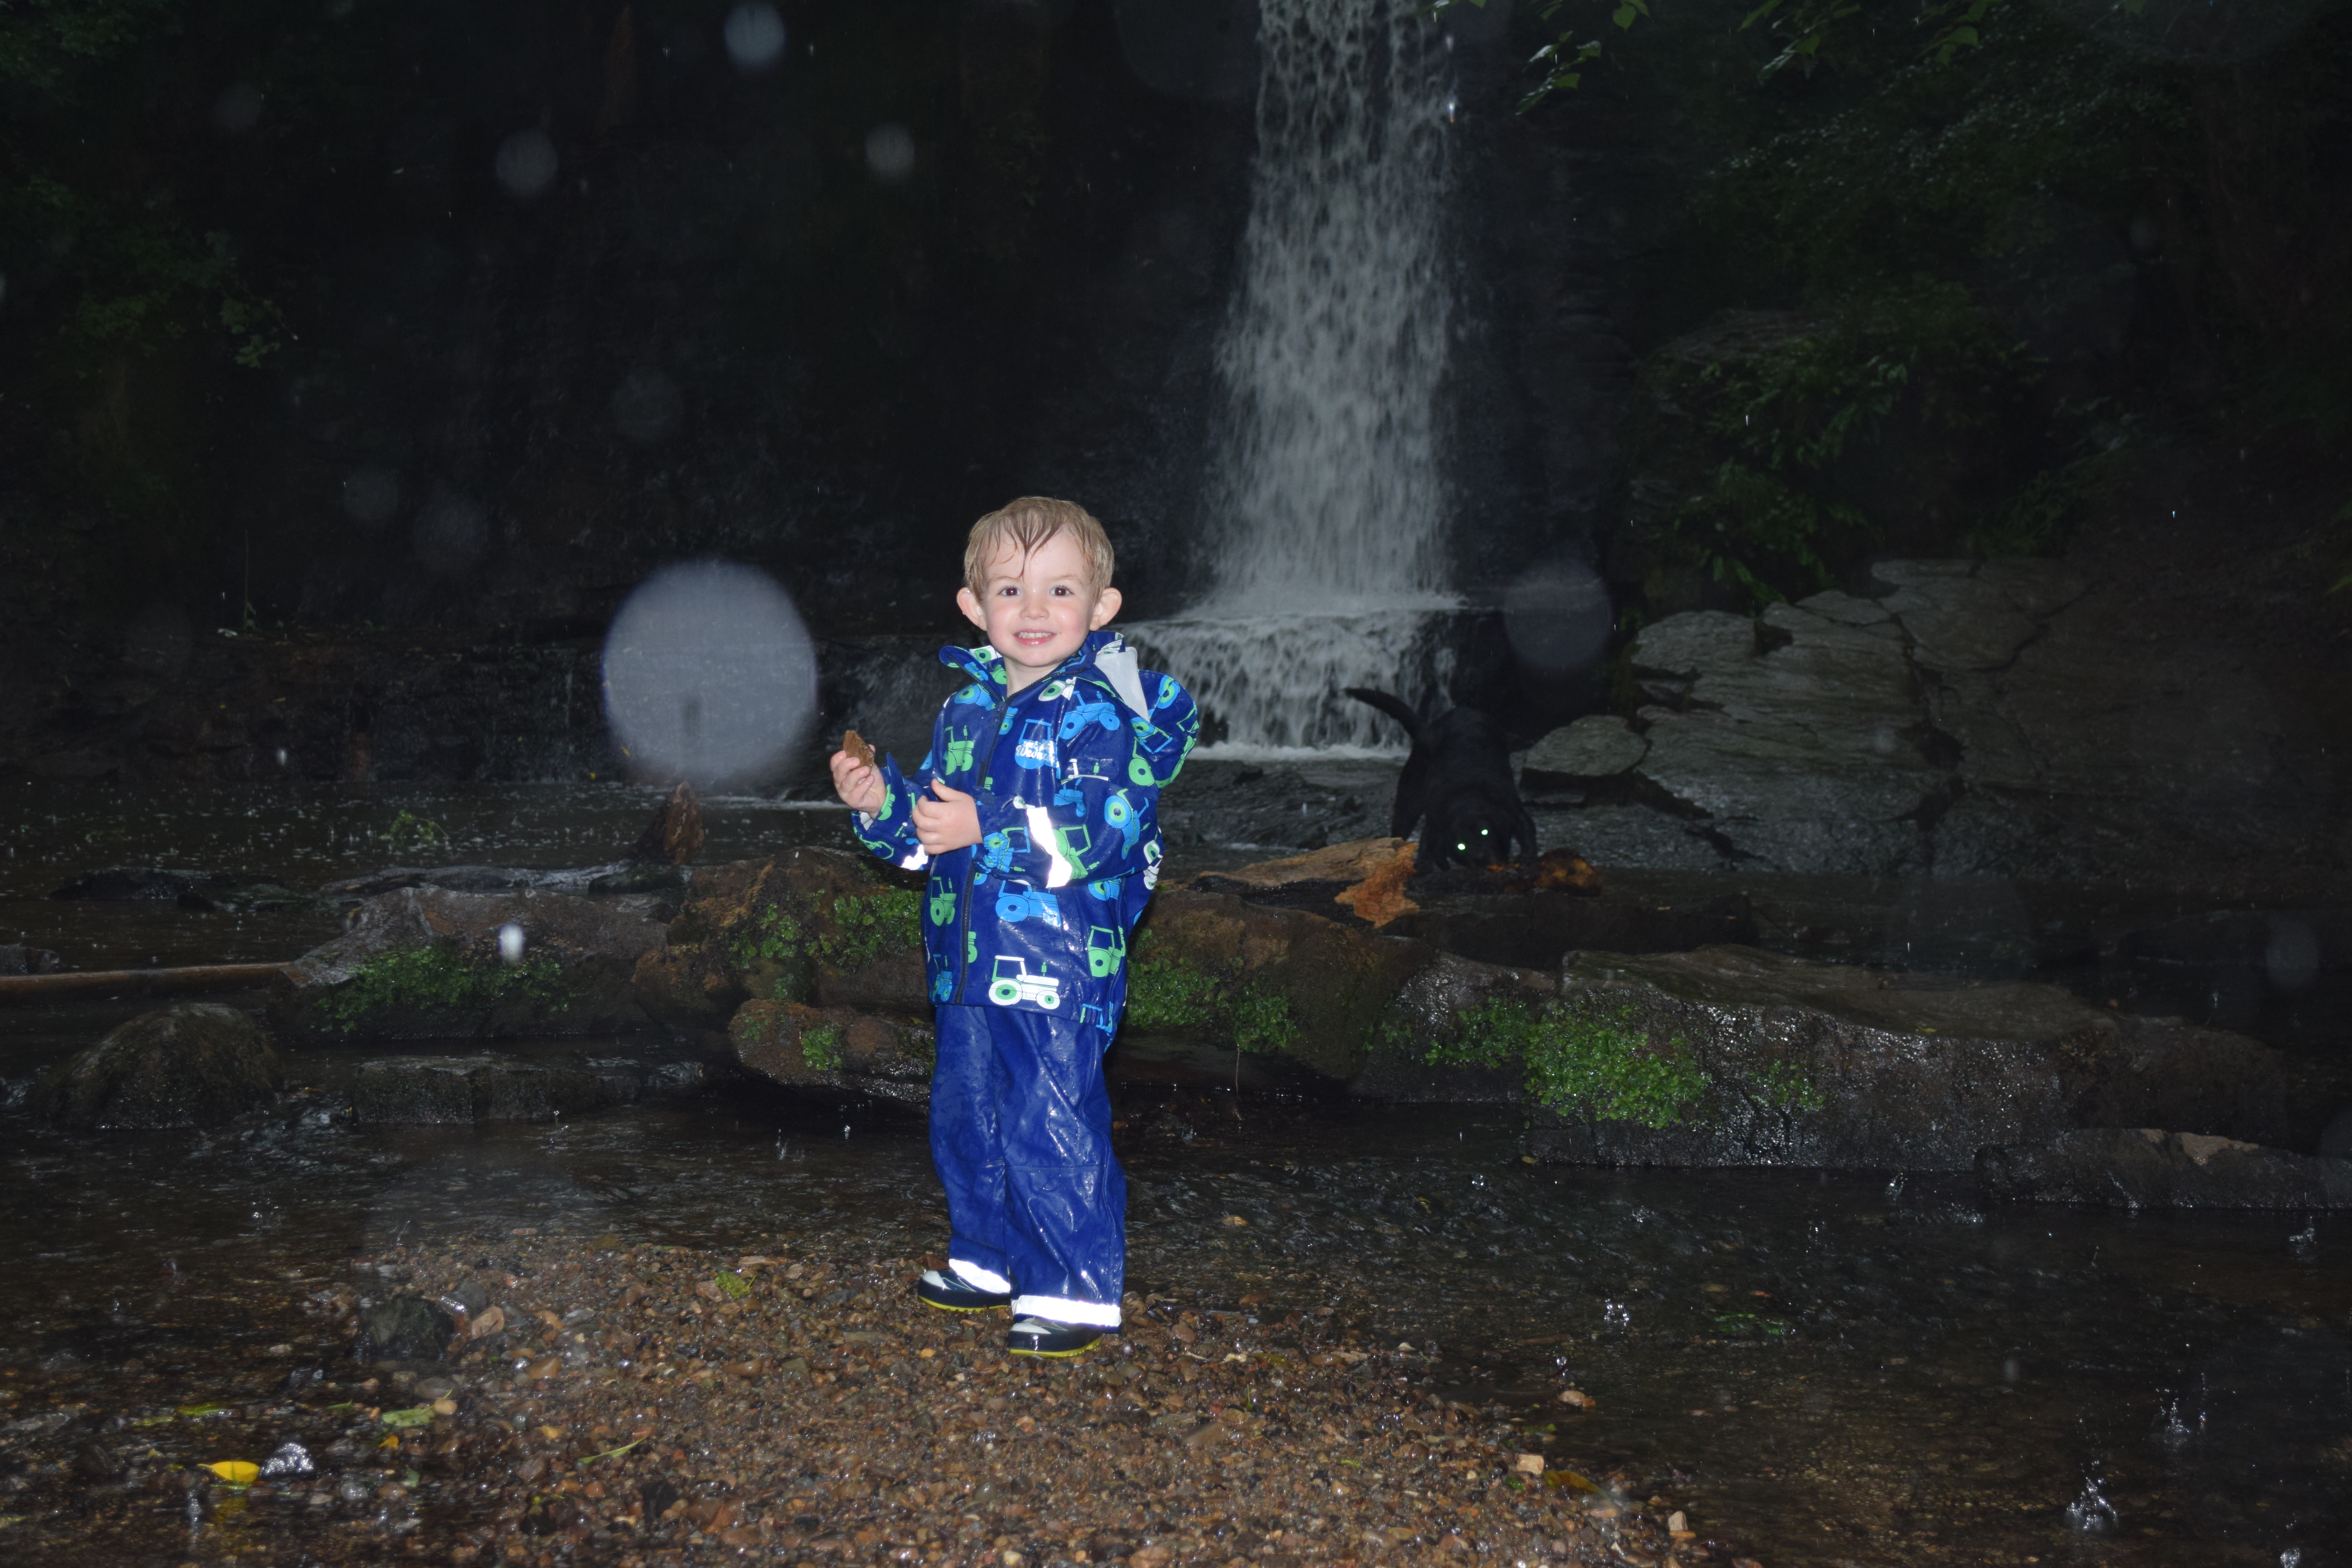 Wet Wednesdays brilliant kid's waterproof rainset is a great shell.